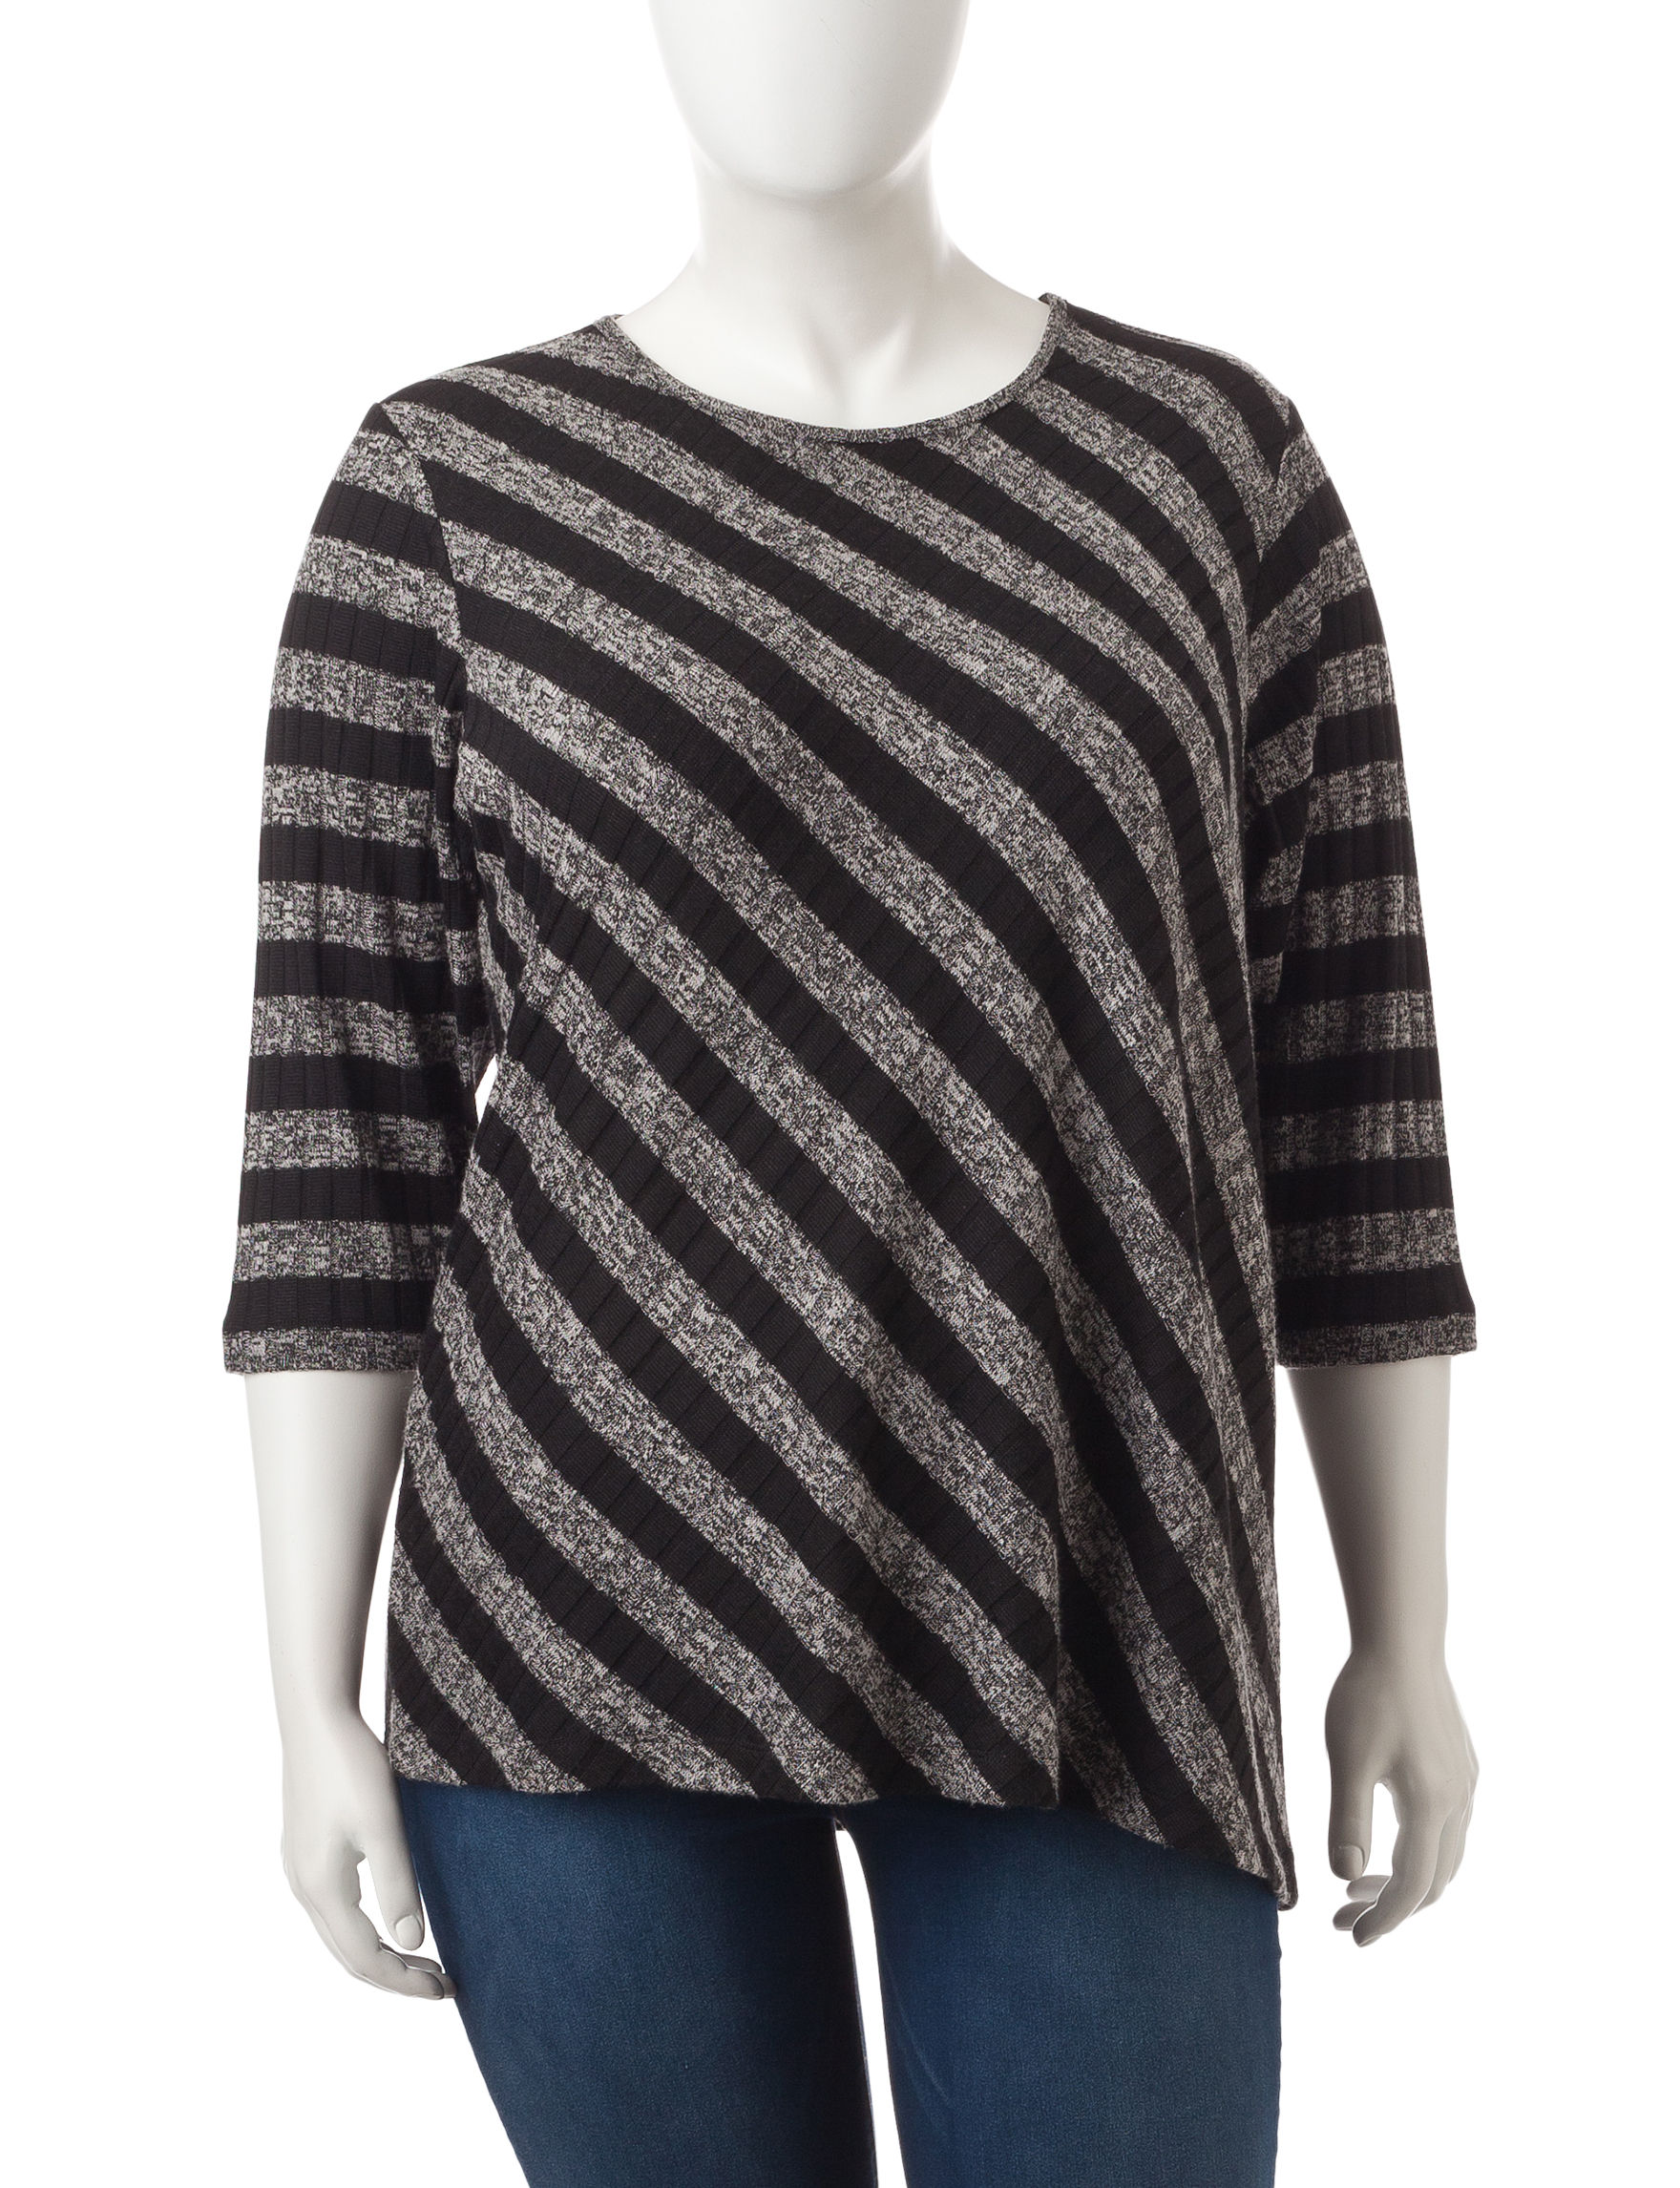 Cathy Daniels Black/Grey Pull-overs Shirts & Blouses